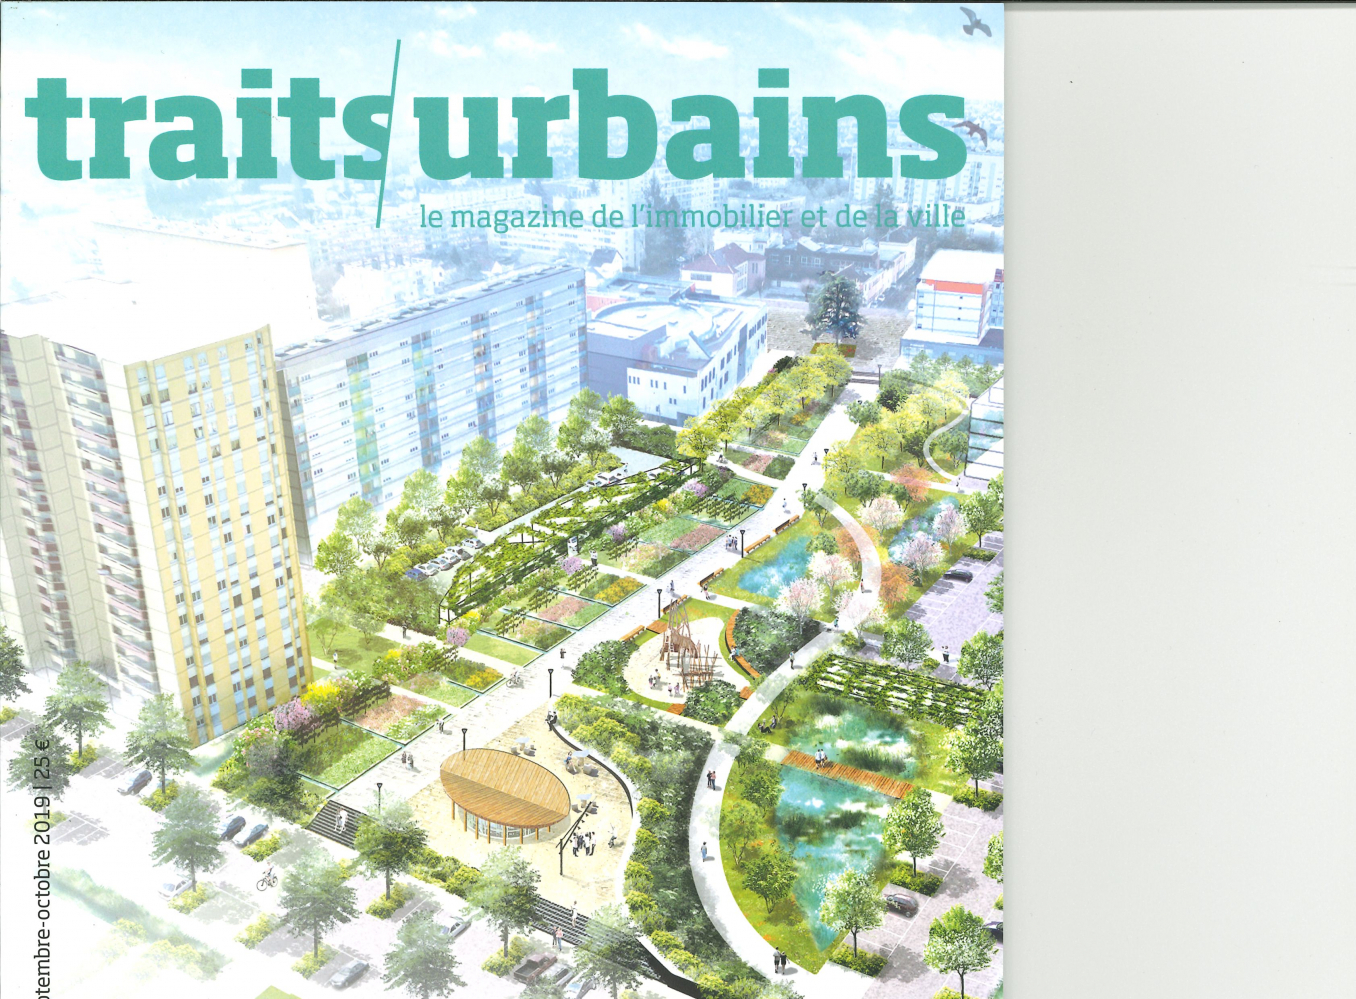 TRAITS URBAINS N 106 RENOVATION URBAINE  - SEPTEMBRE/OCTOBRE 2019